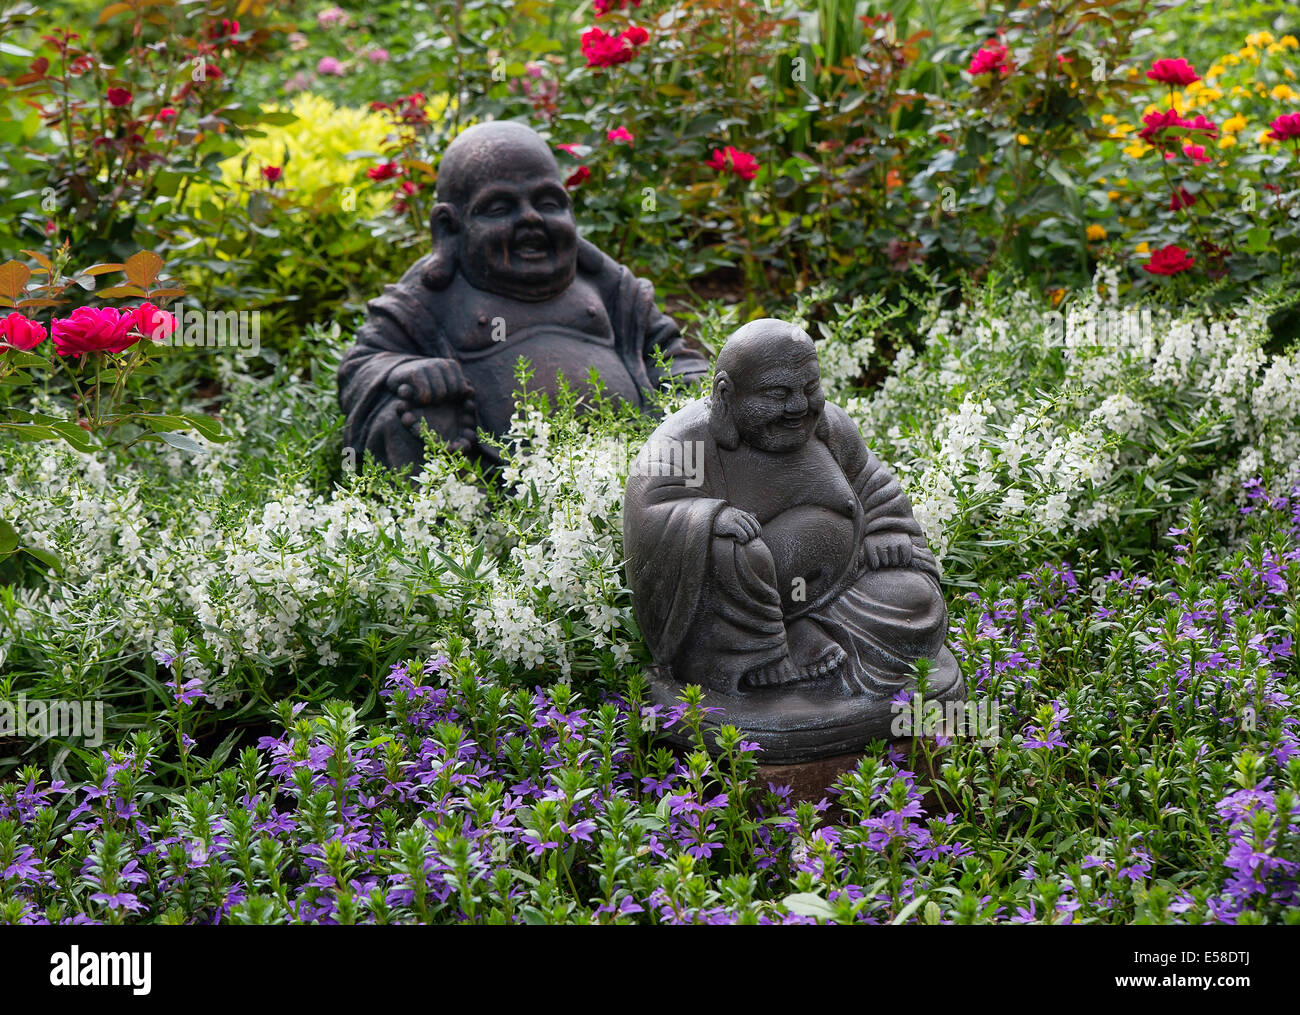 Home flower garden in full bloom with Buddha sculpture. - Stock Image